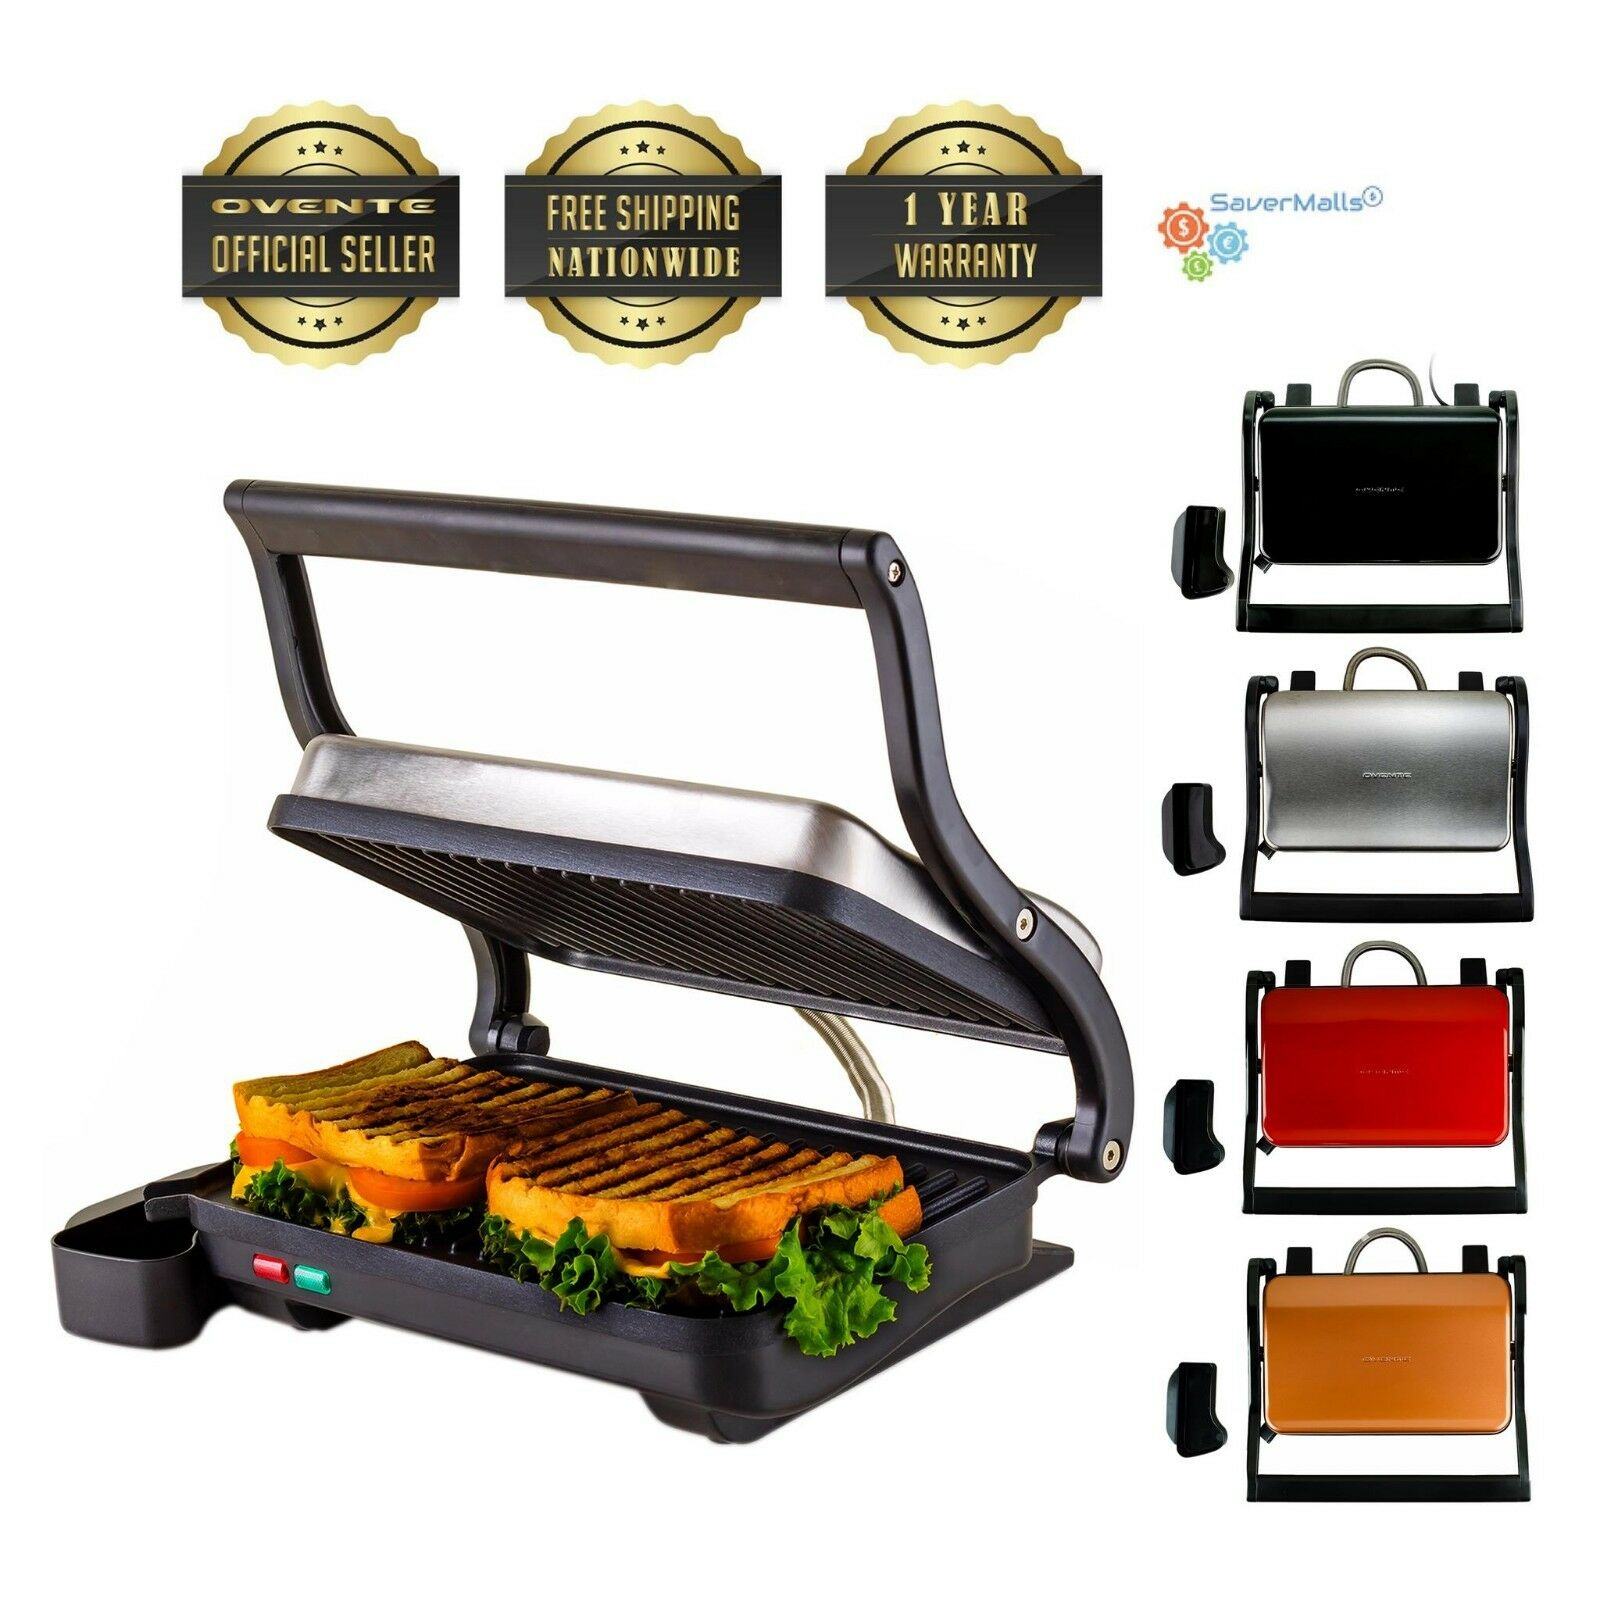 Ovente Electric Panini Press Grill and Gourmet Sandwich Make